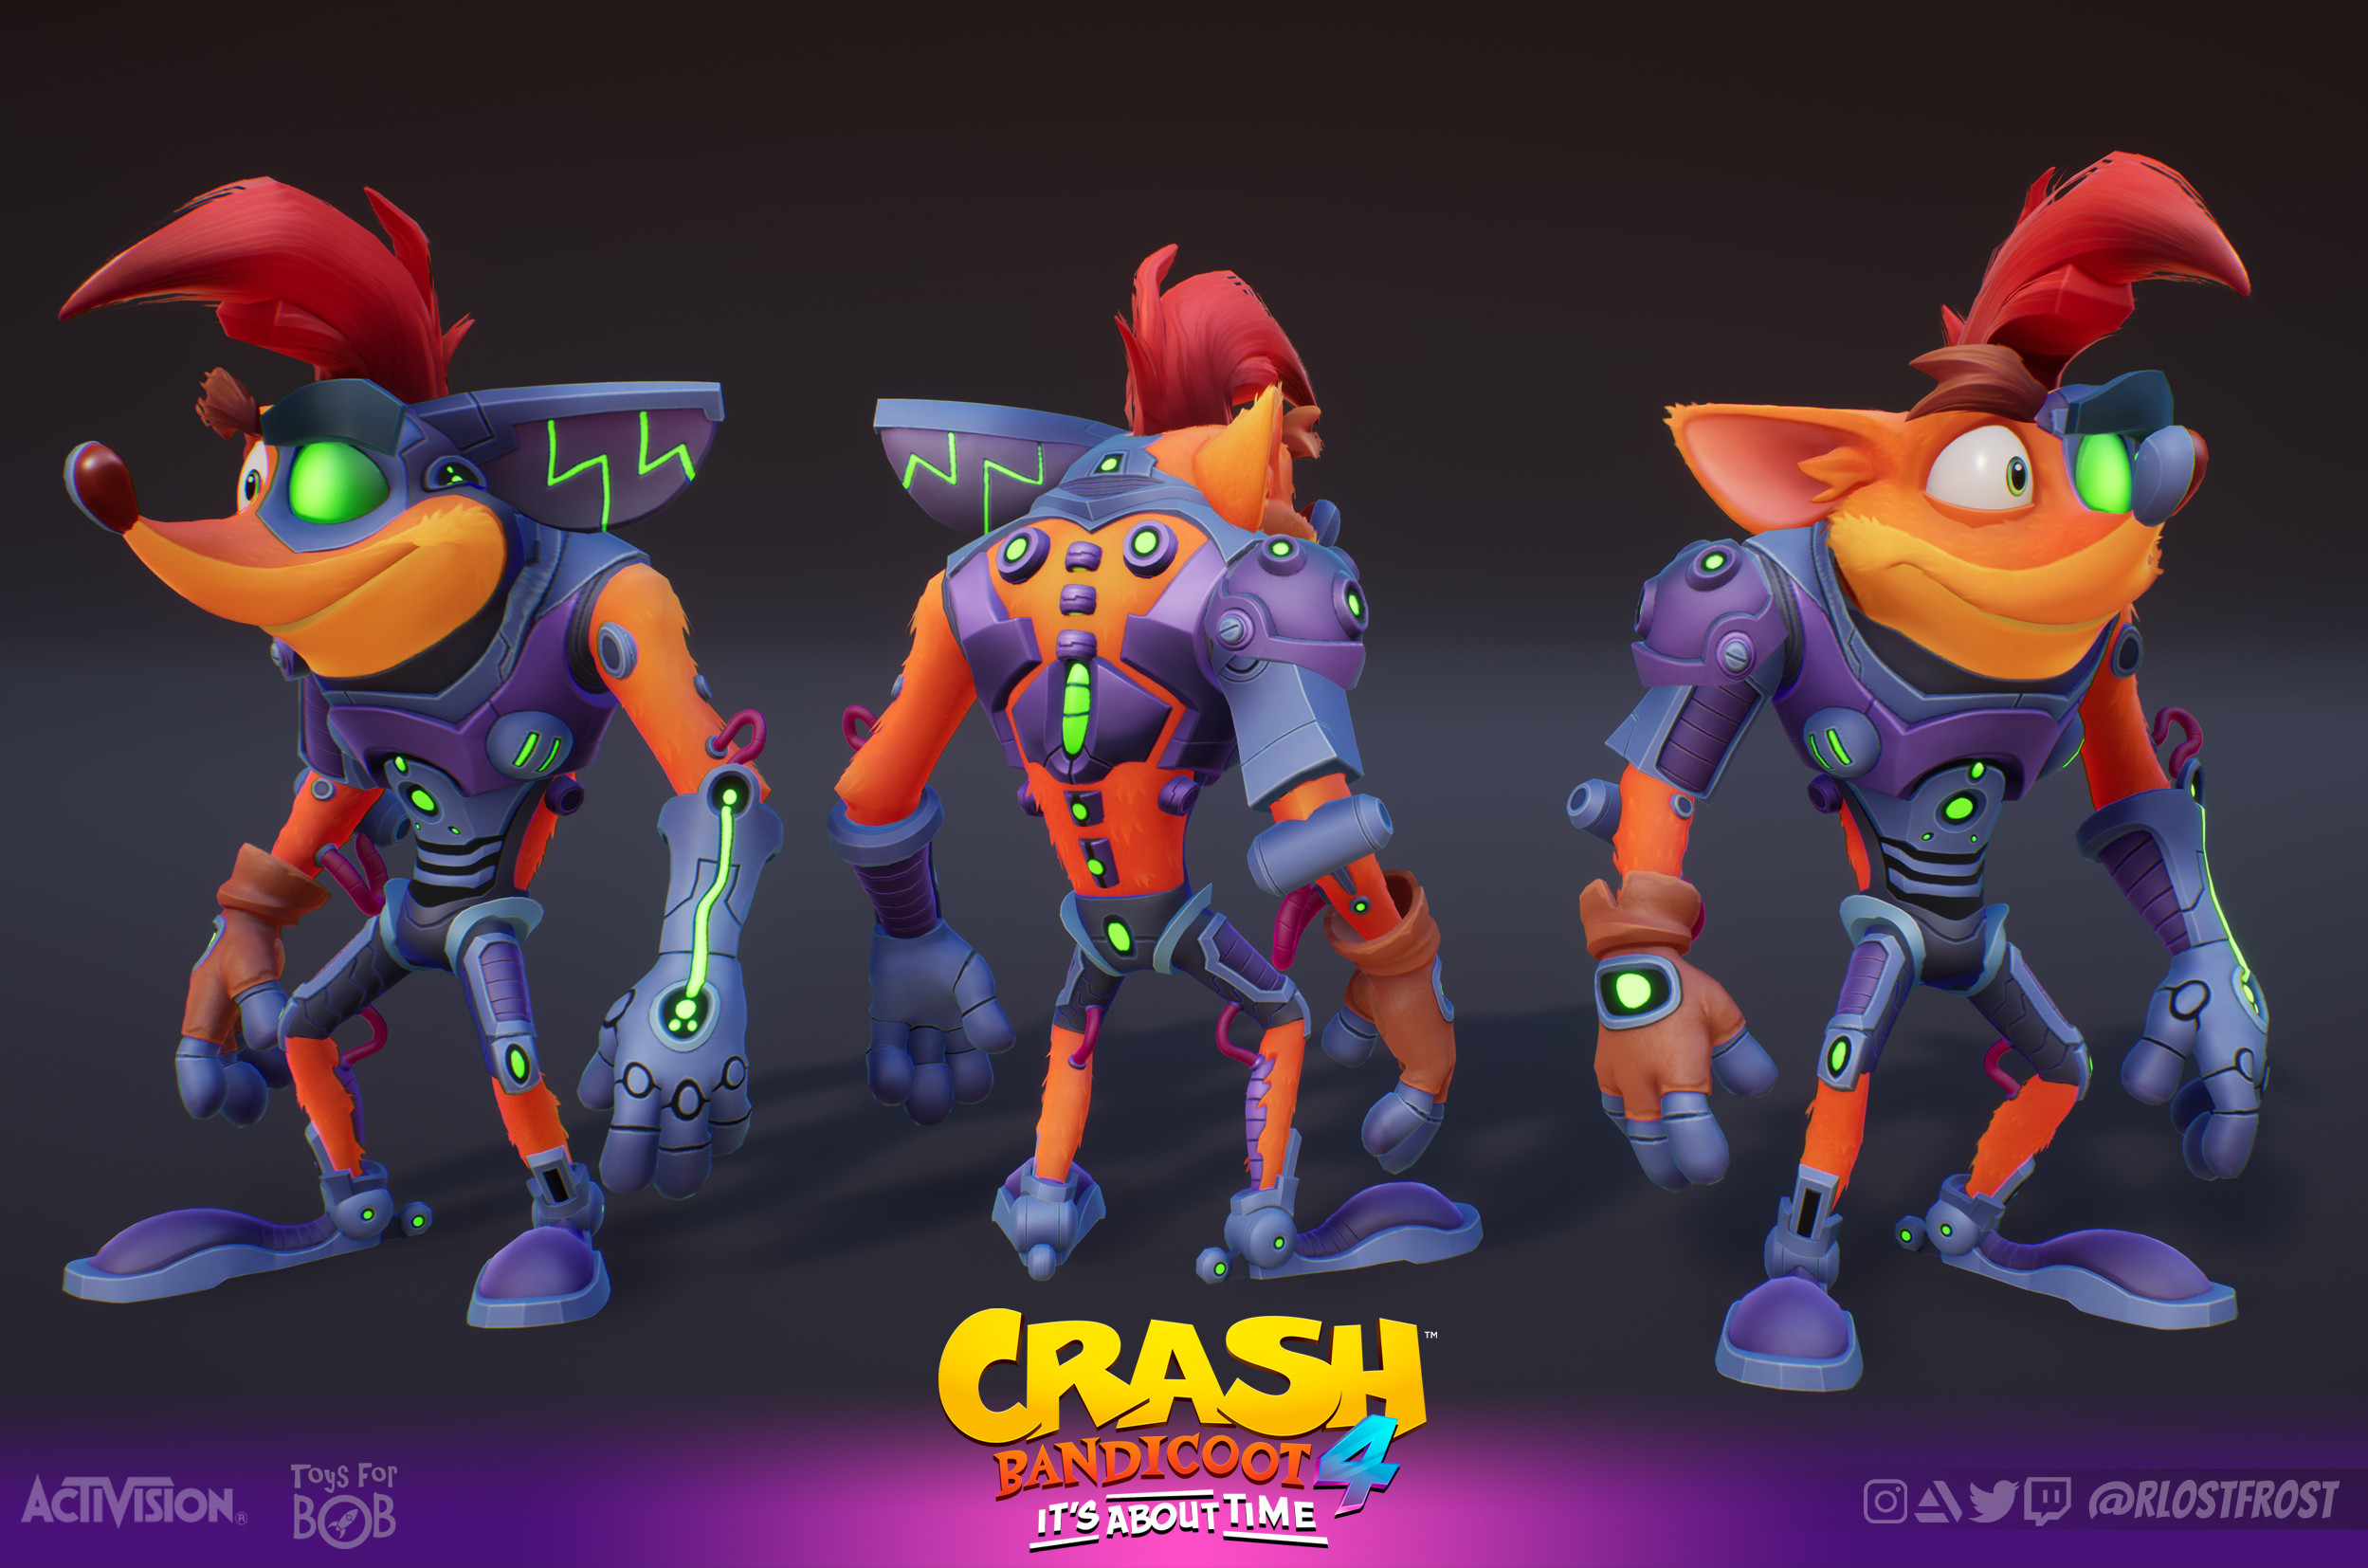 Crash's Serious Upgrade Skin In-game textured model.  Credit to our Character department at Toys For Bob and Airborn Studios for their work on the base Crash model.